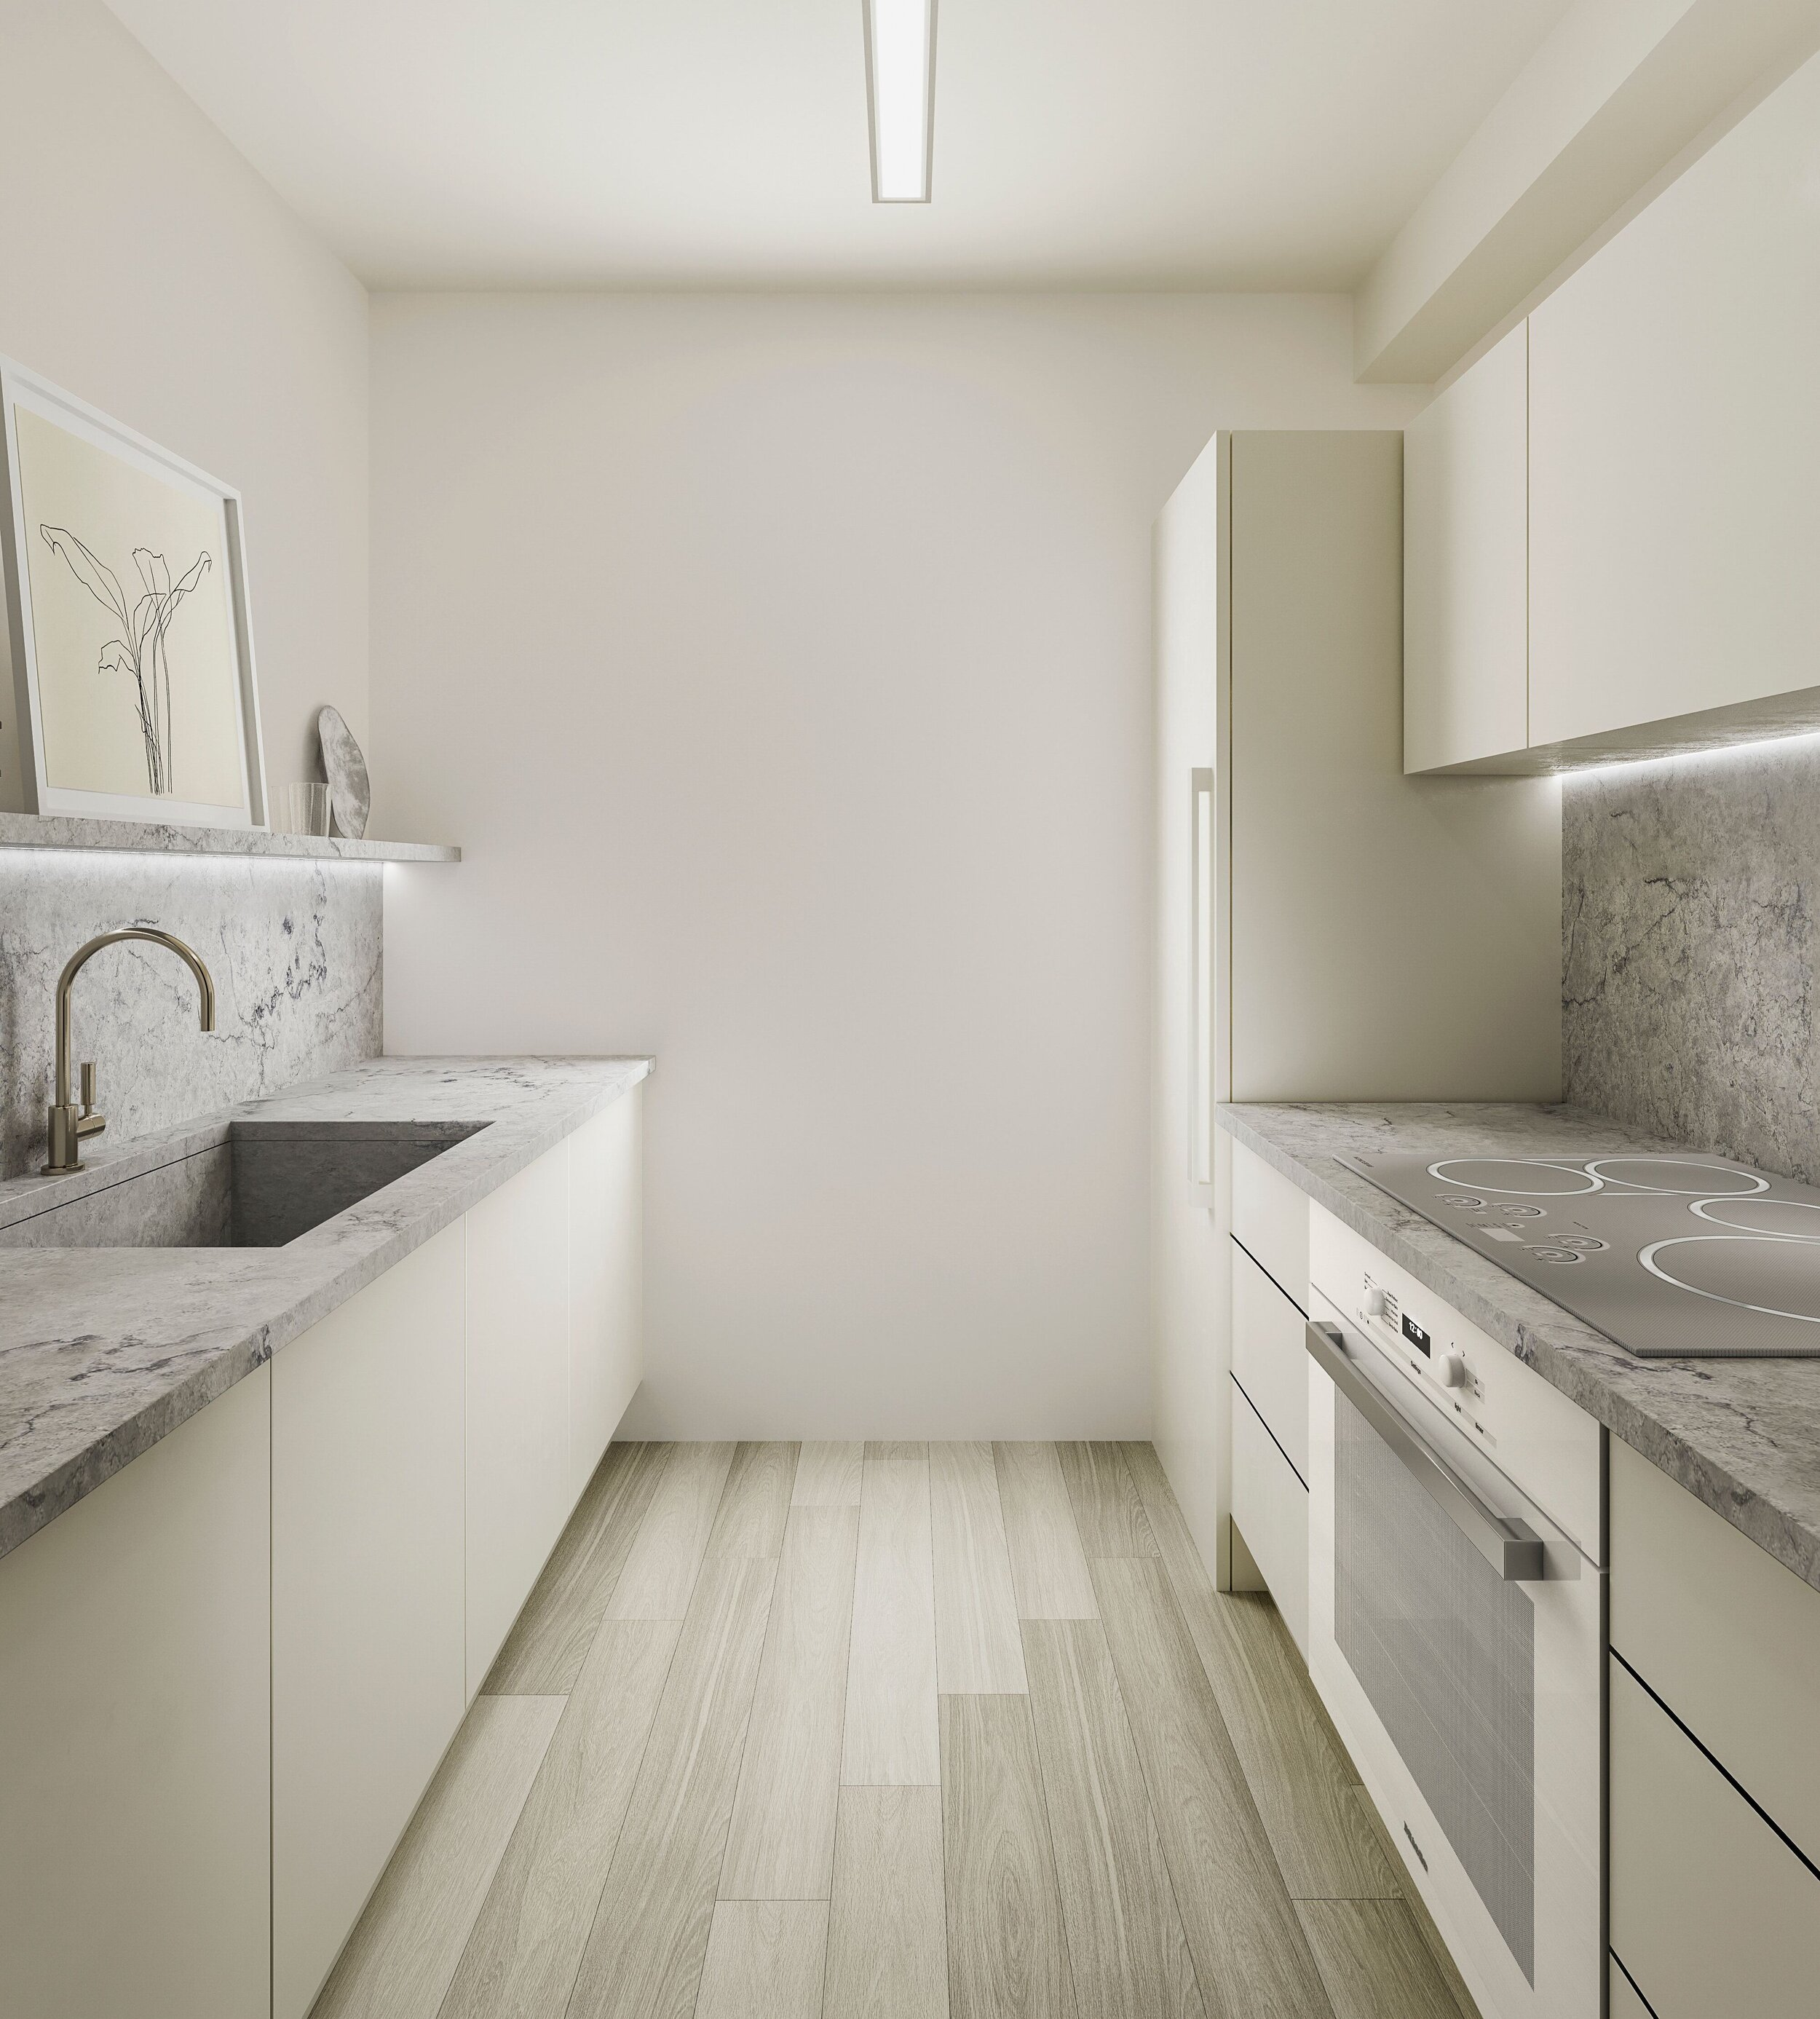 A rendering of the kitchen redesign in our 25 Columbus Circle project with limestone countertops and sink.